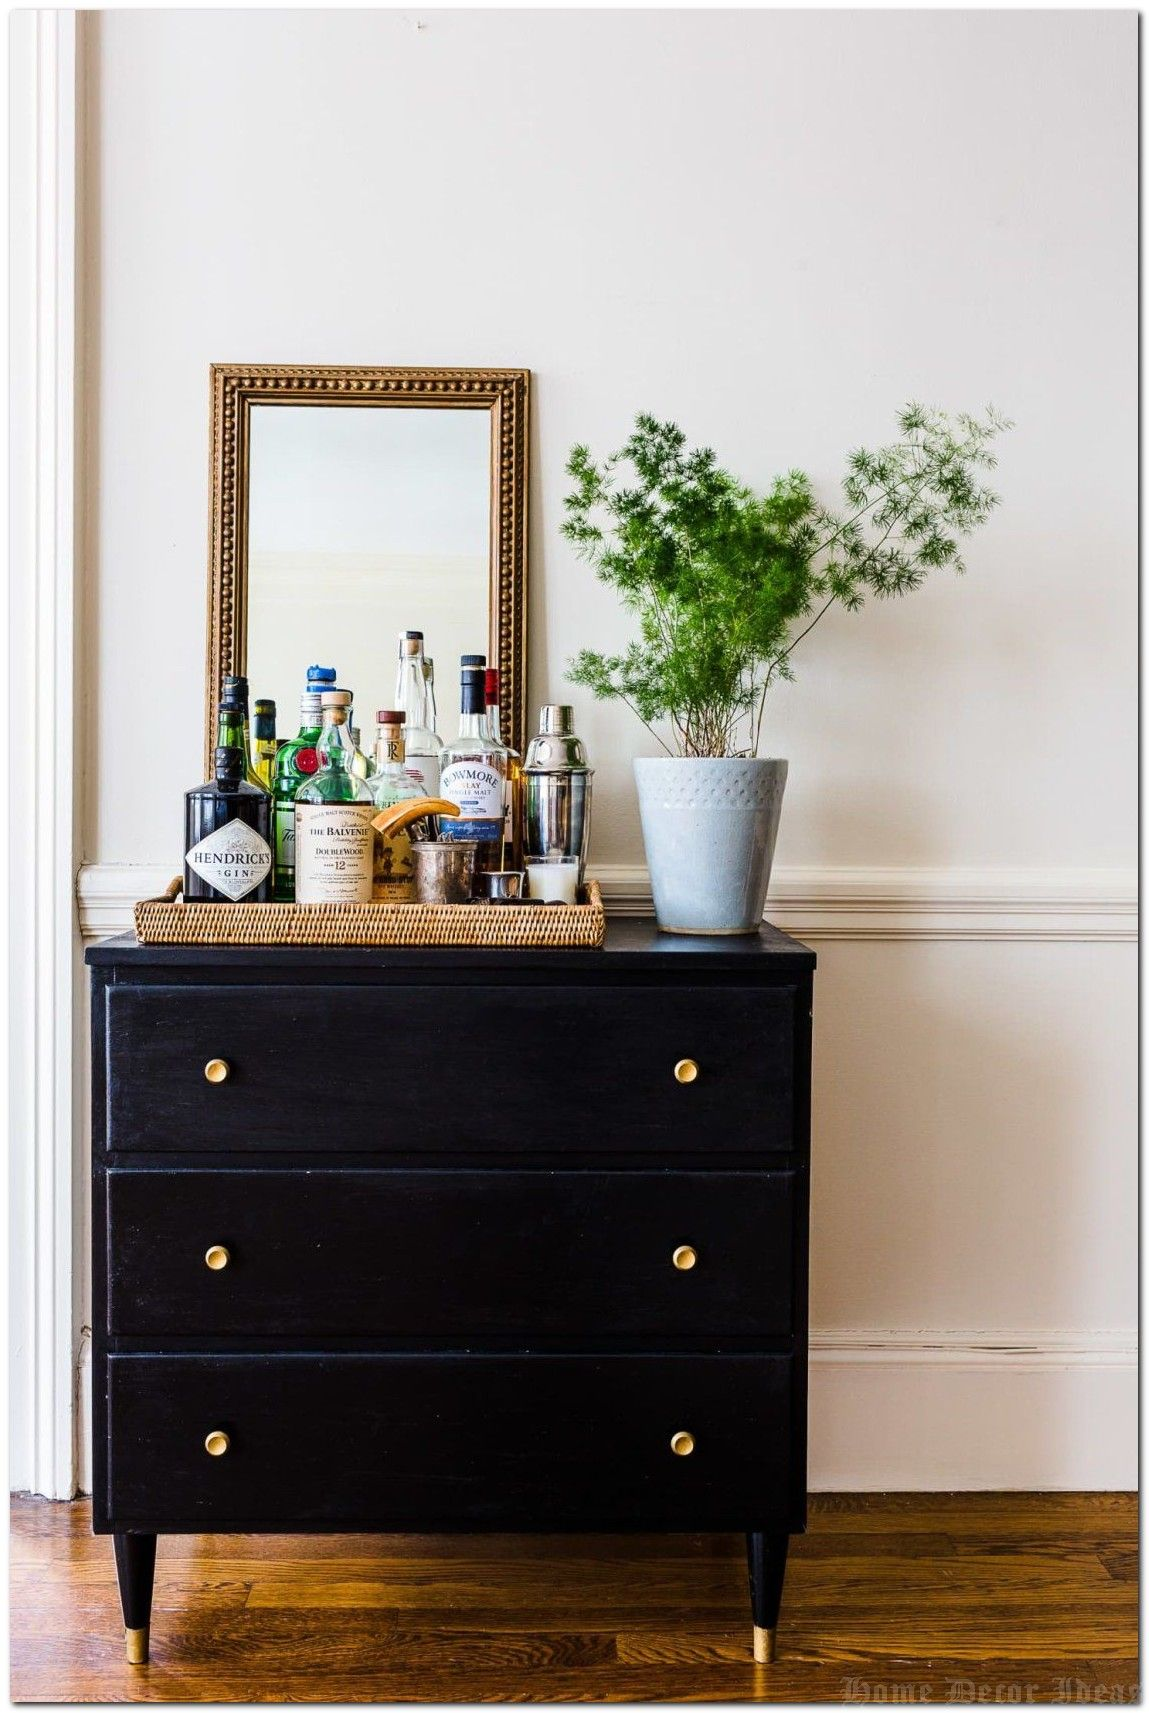 Home Decorating Ideas_On-a-Budget 02